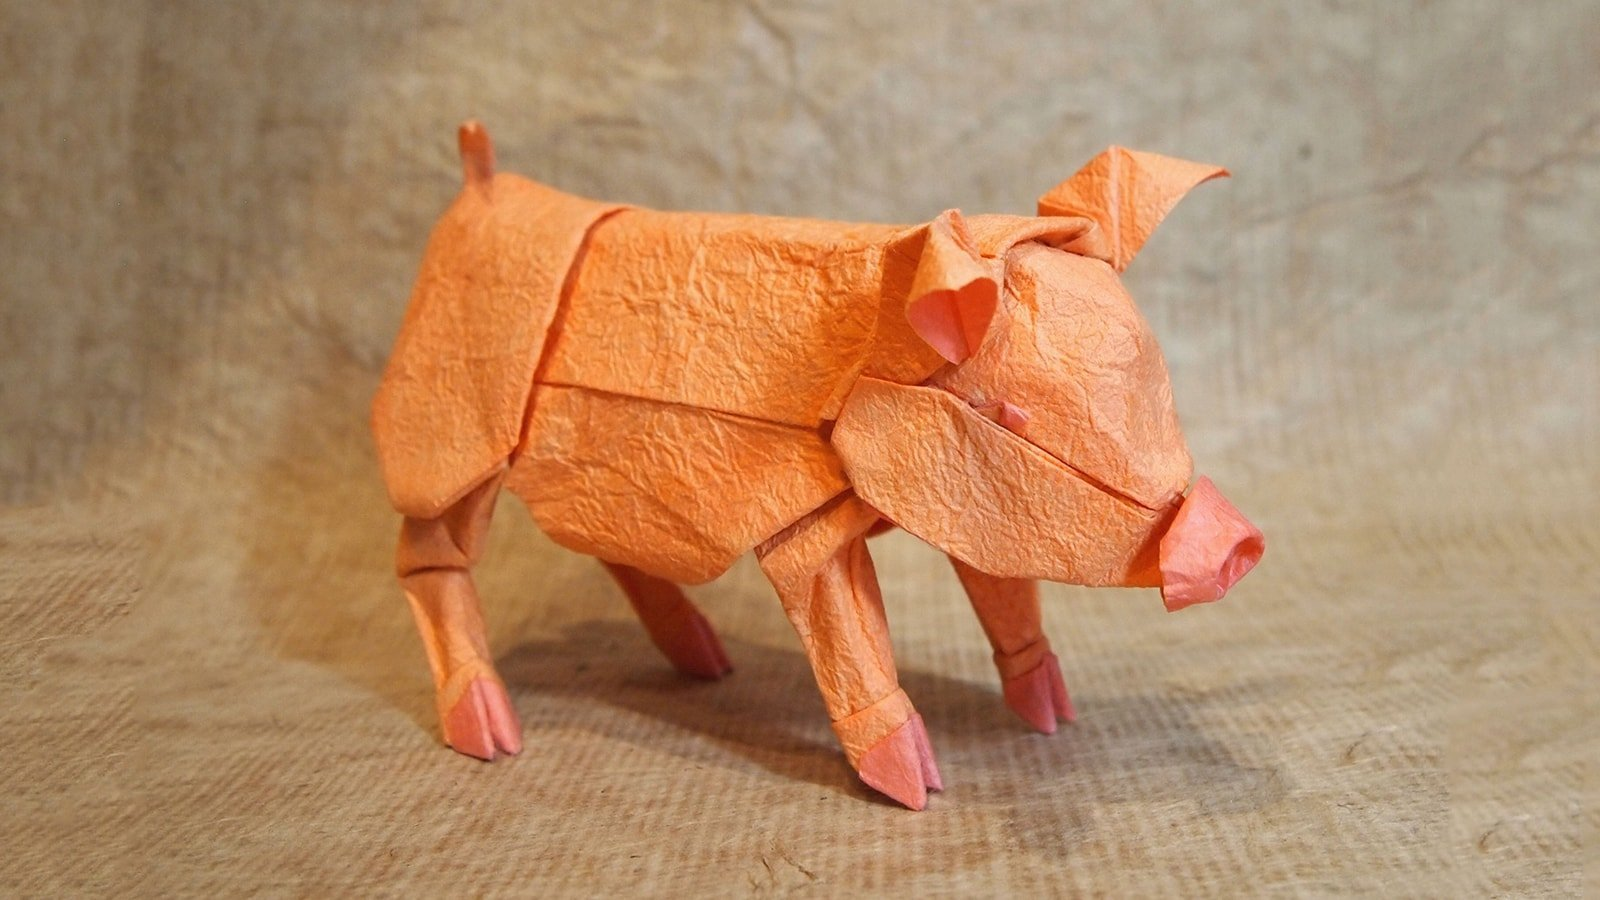 Step by step instructions how to make origami pig pigs t - photo#8